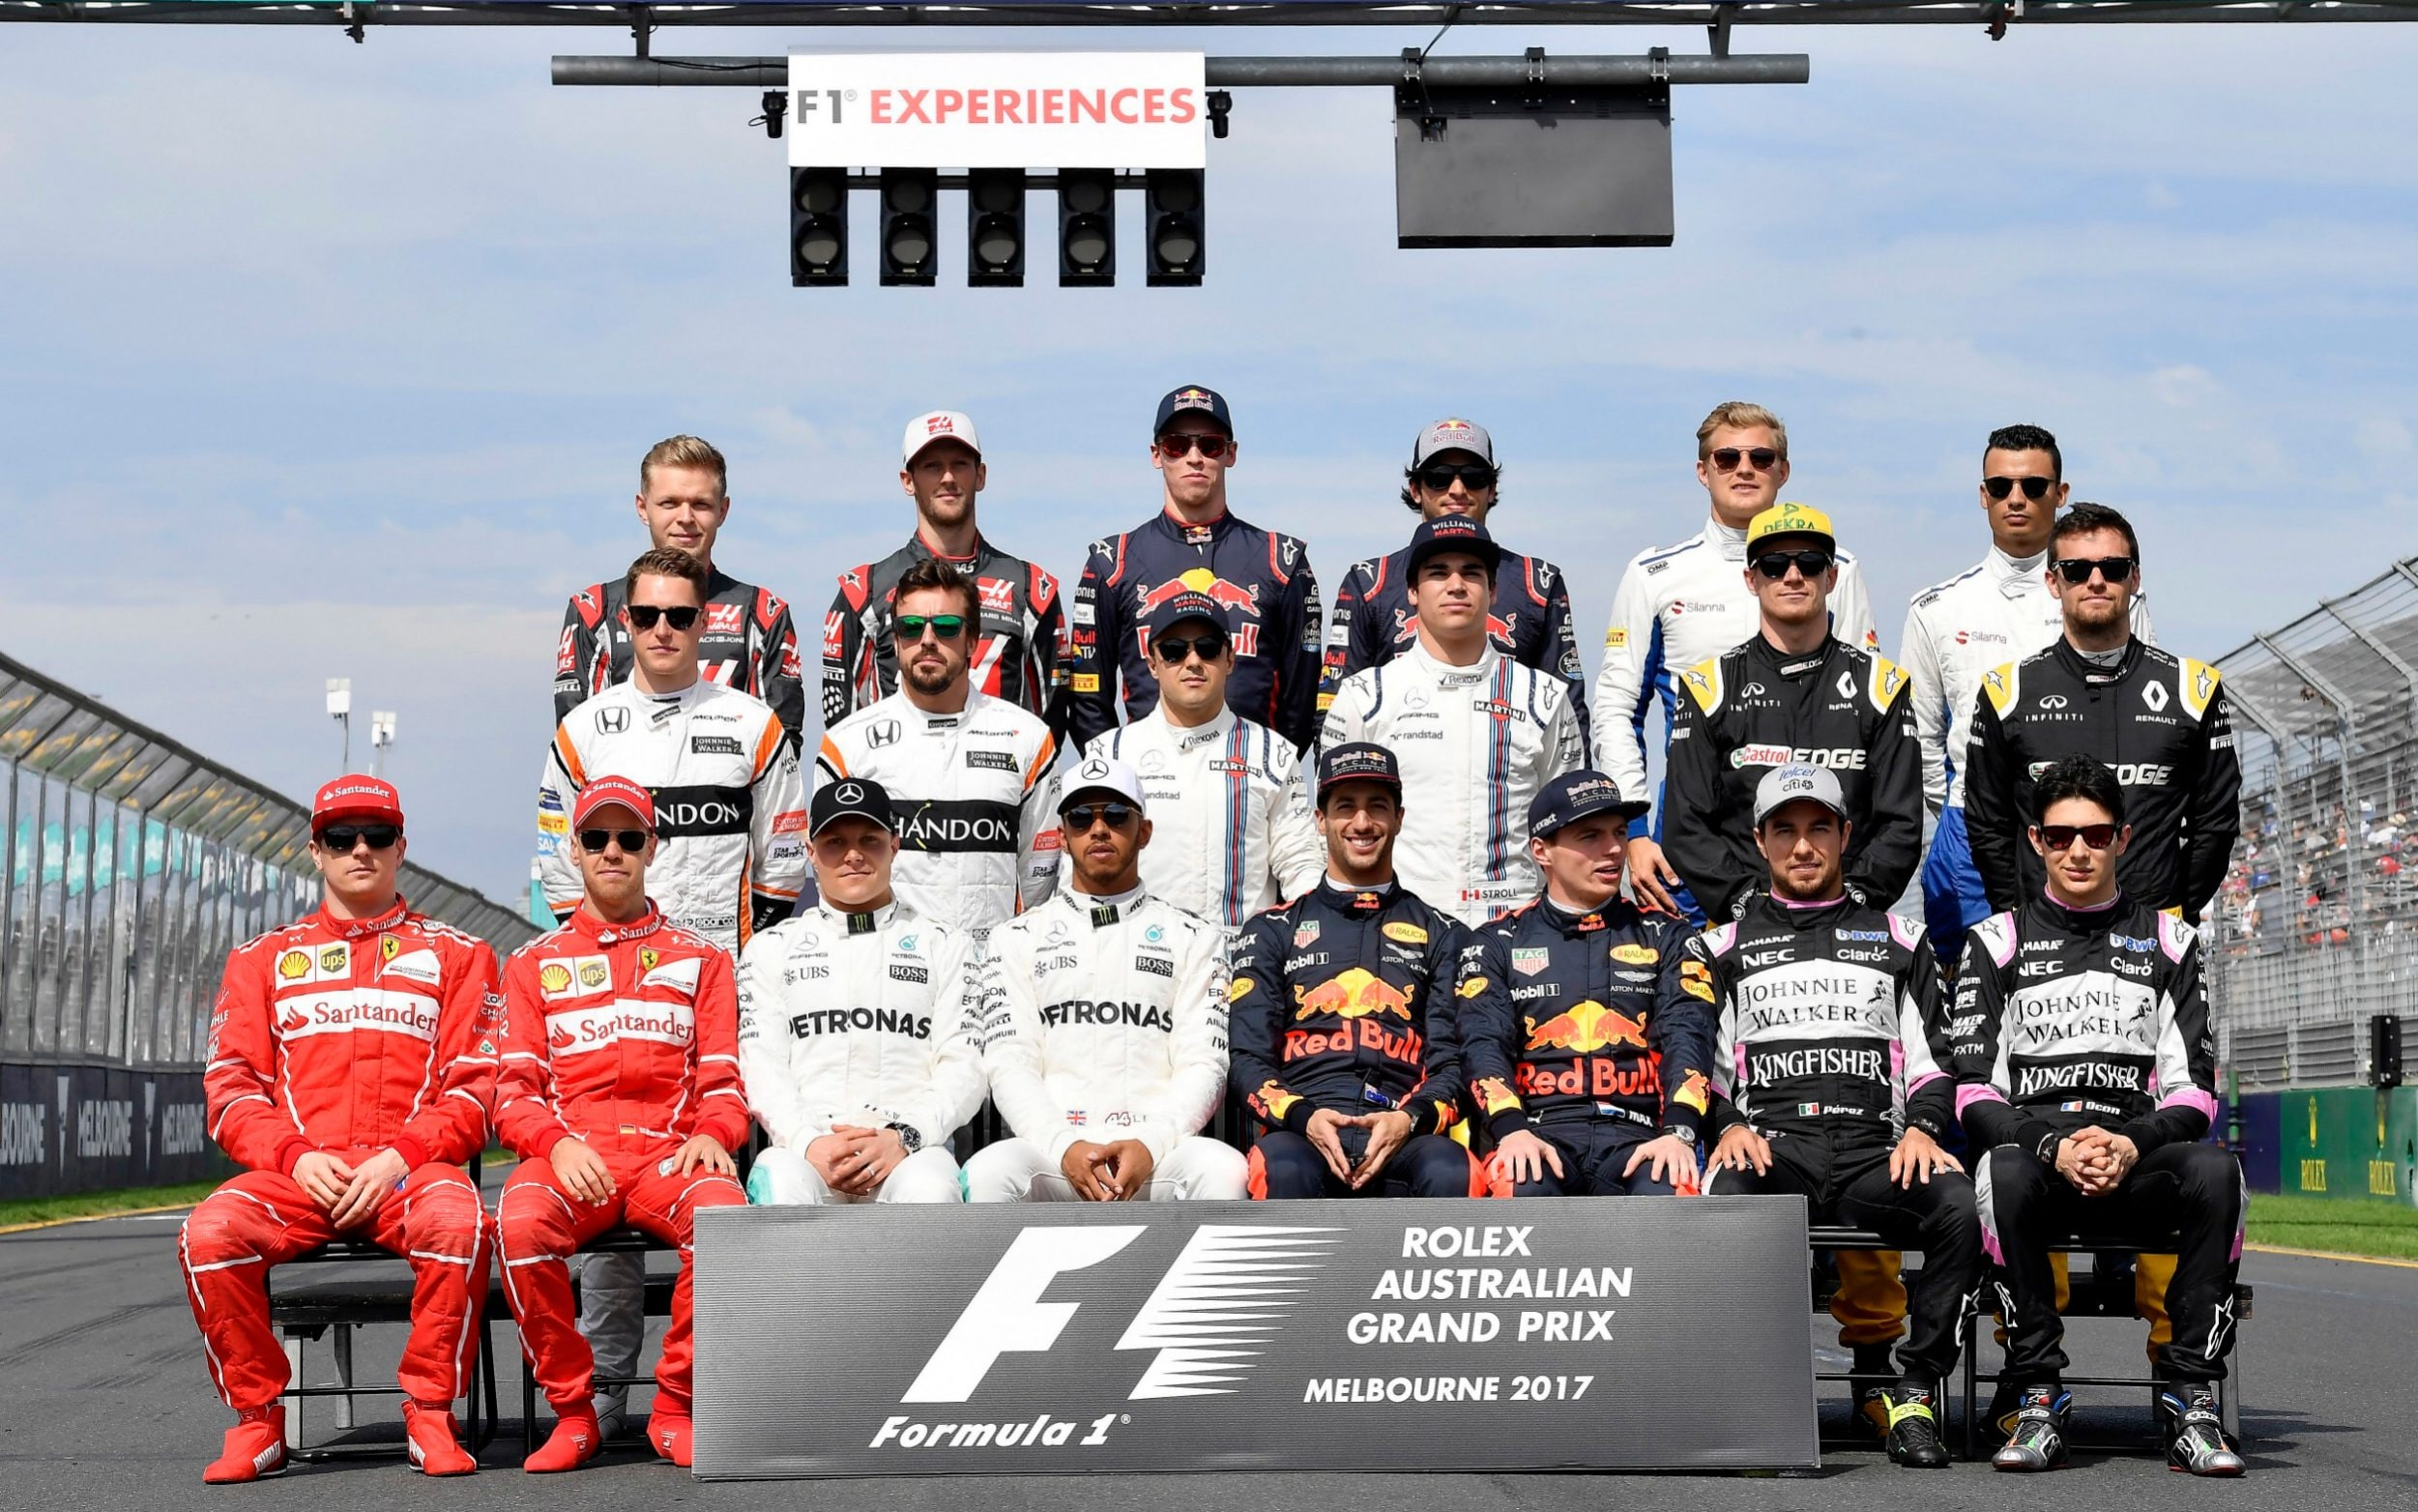 F1 2017 Drivers F1 Drivers Australian Grand Prix 2017 Pictures Celebrities